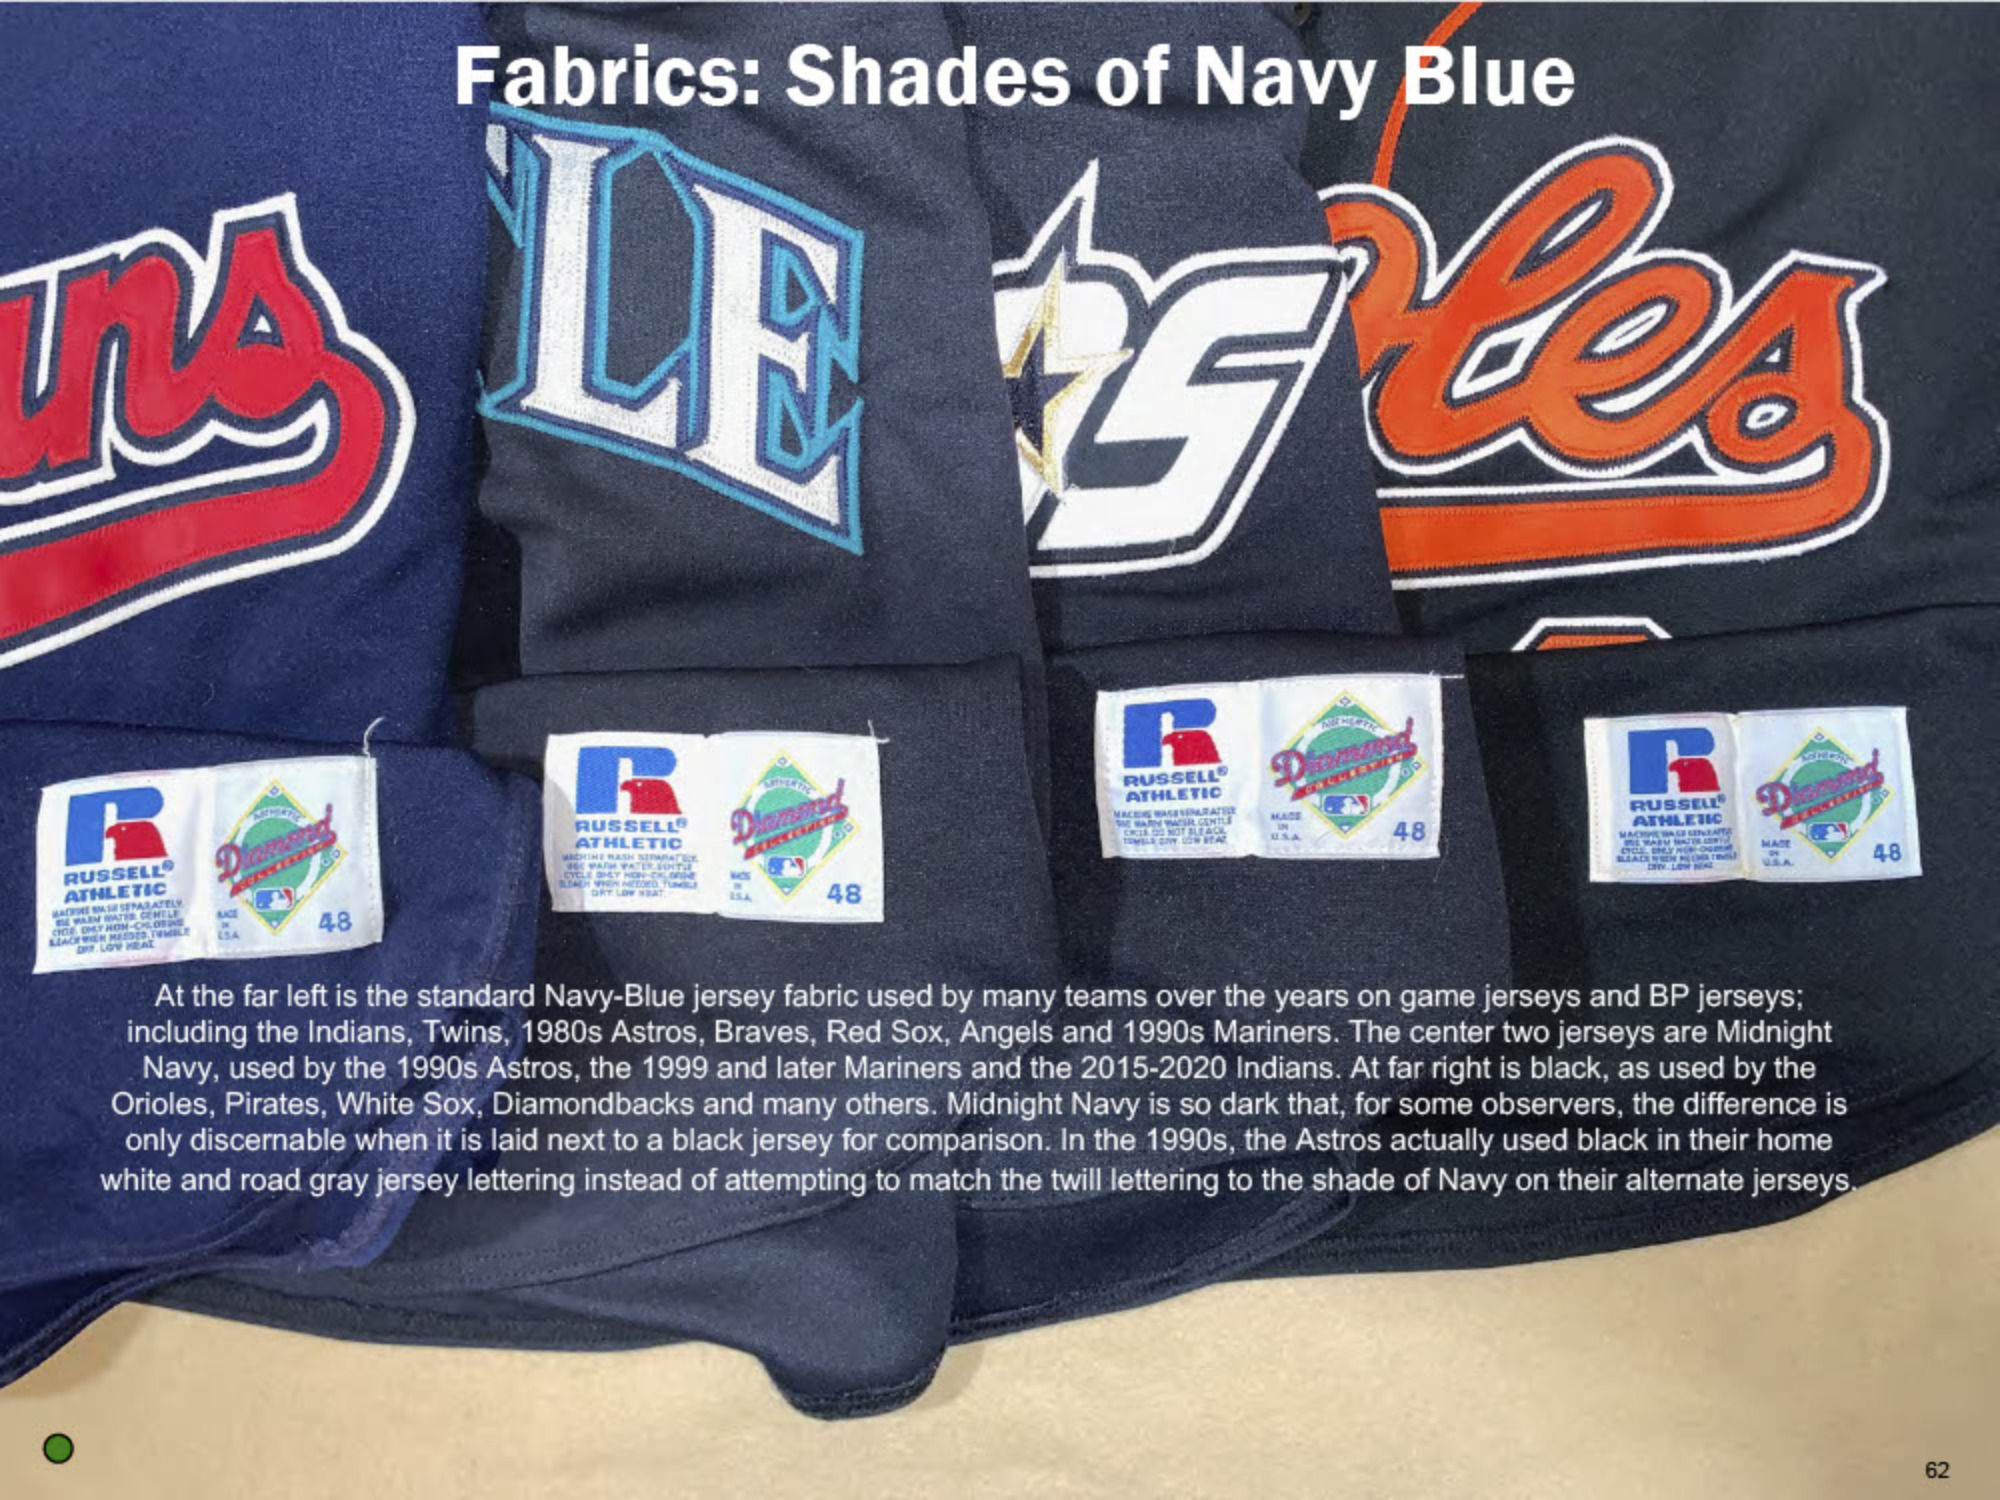 Game Worn Guide to Tampa Bay Rays Jerseys (1998-2020)